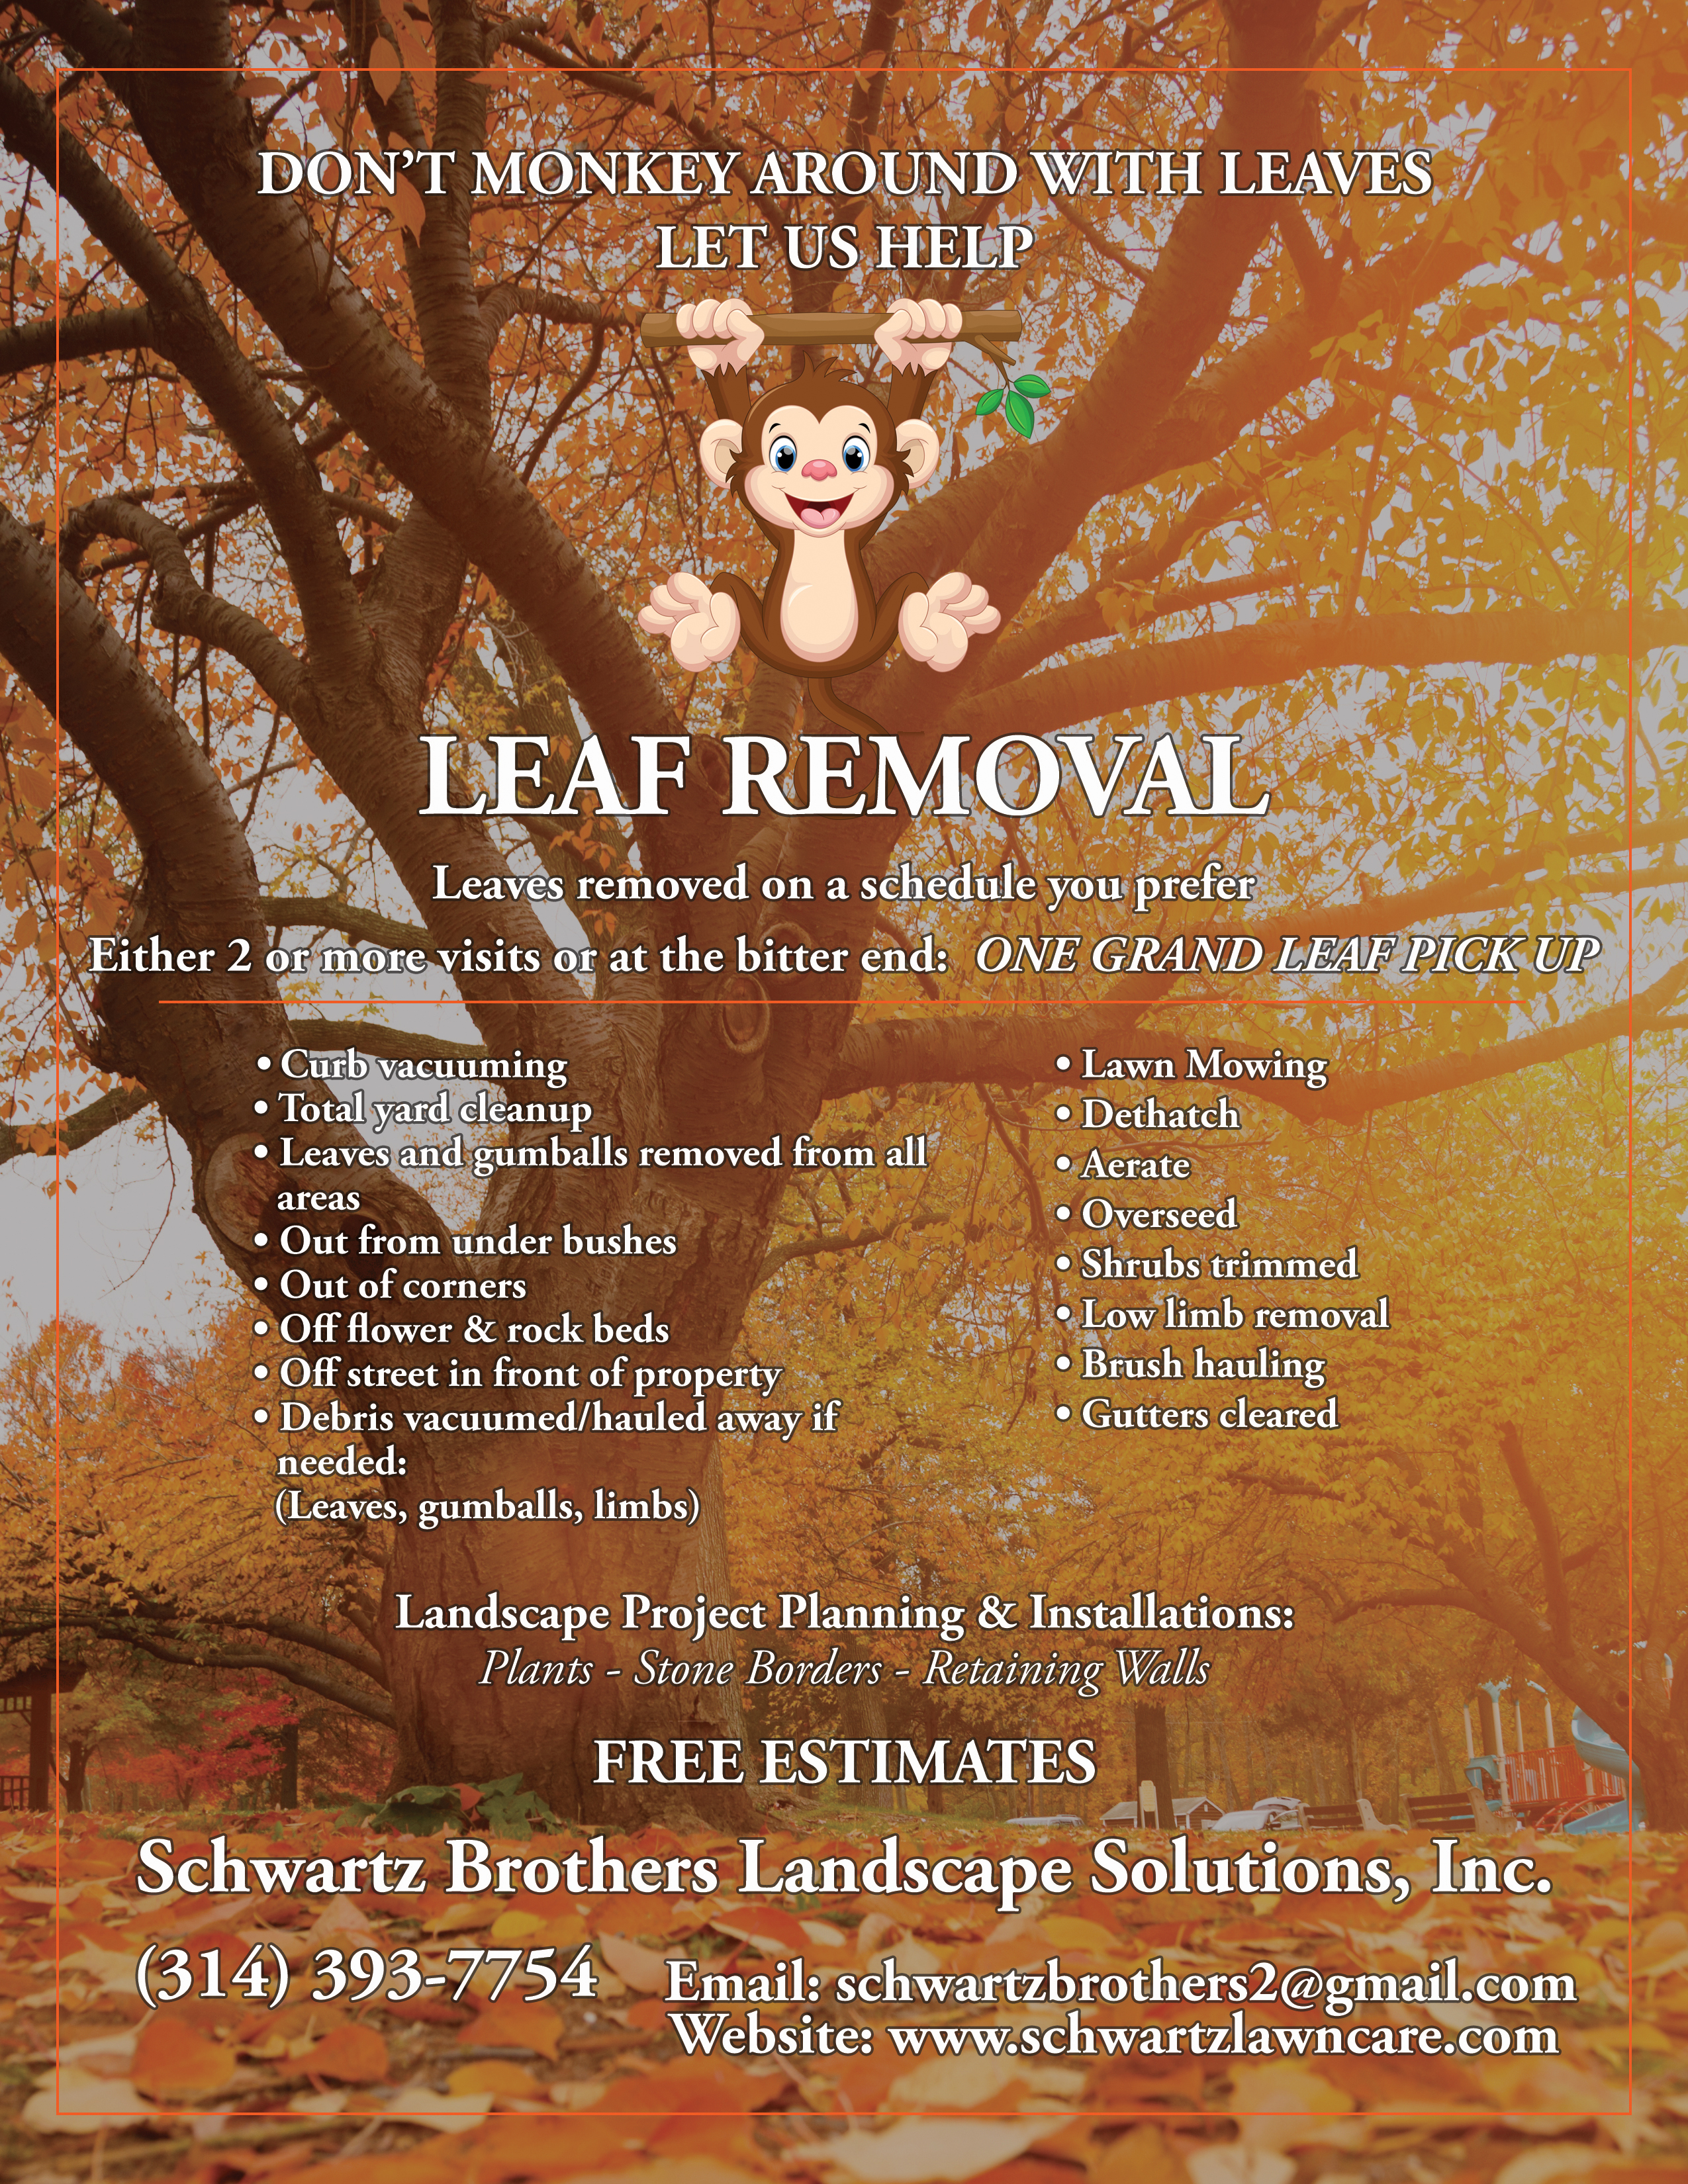 a flyer created for a business to help promote leaf pick up in the fall season